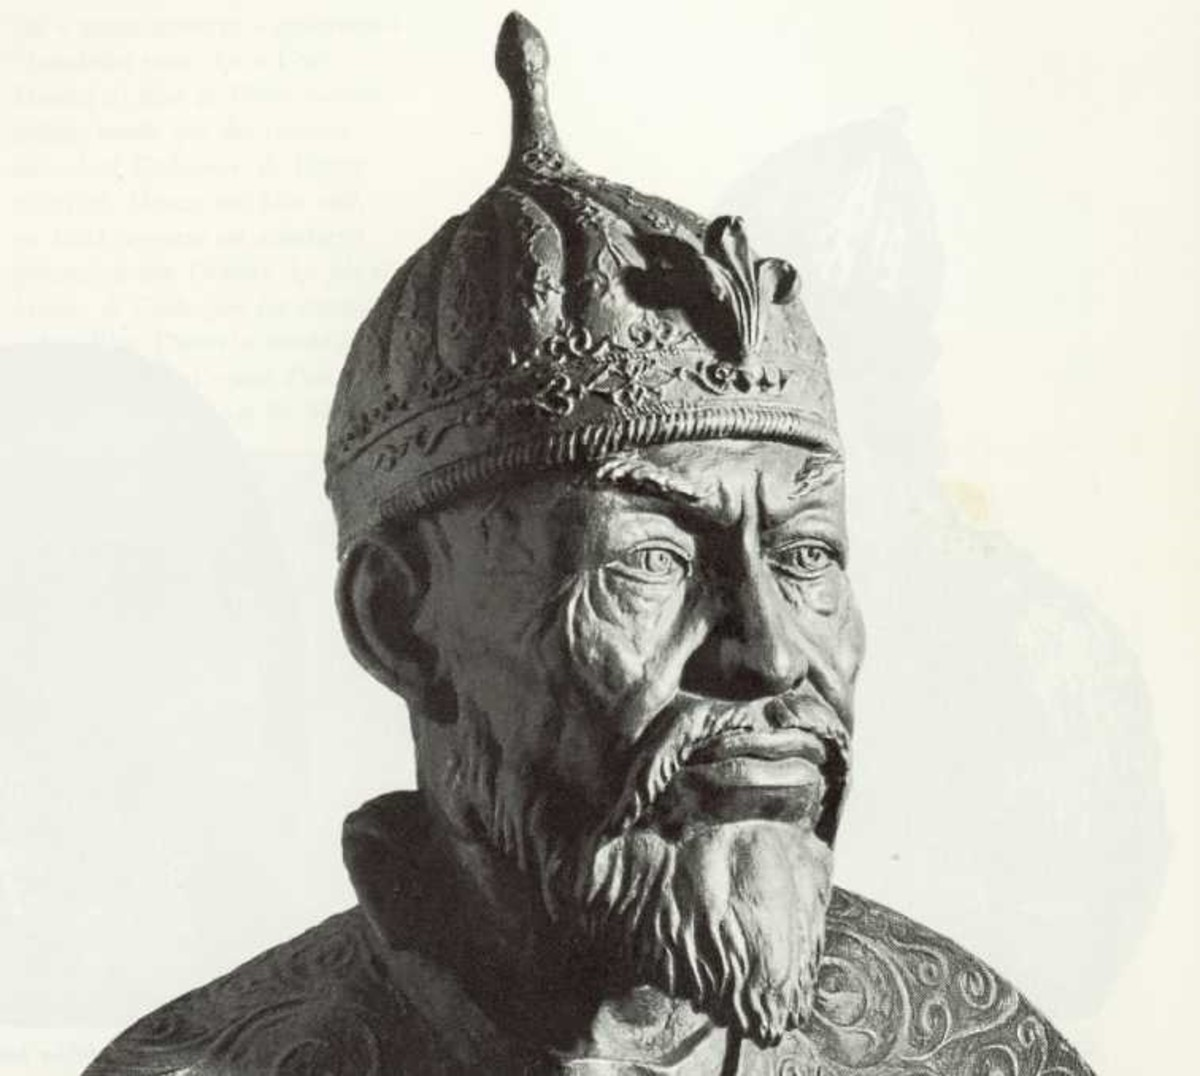 A reconstruction of Tamerlane's face from his skull.